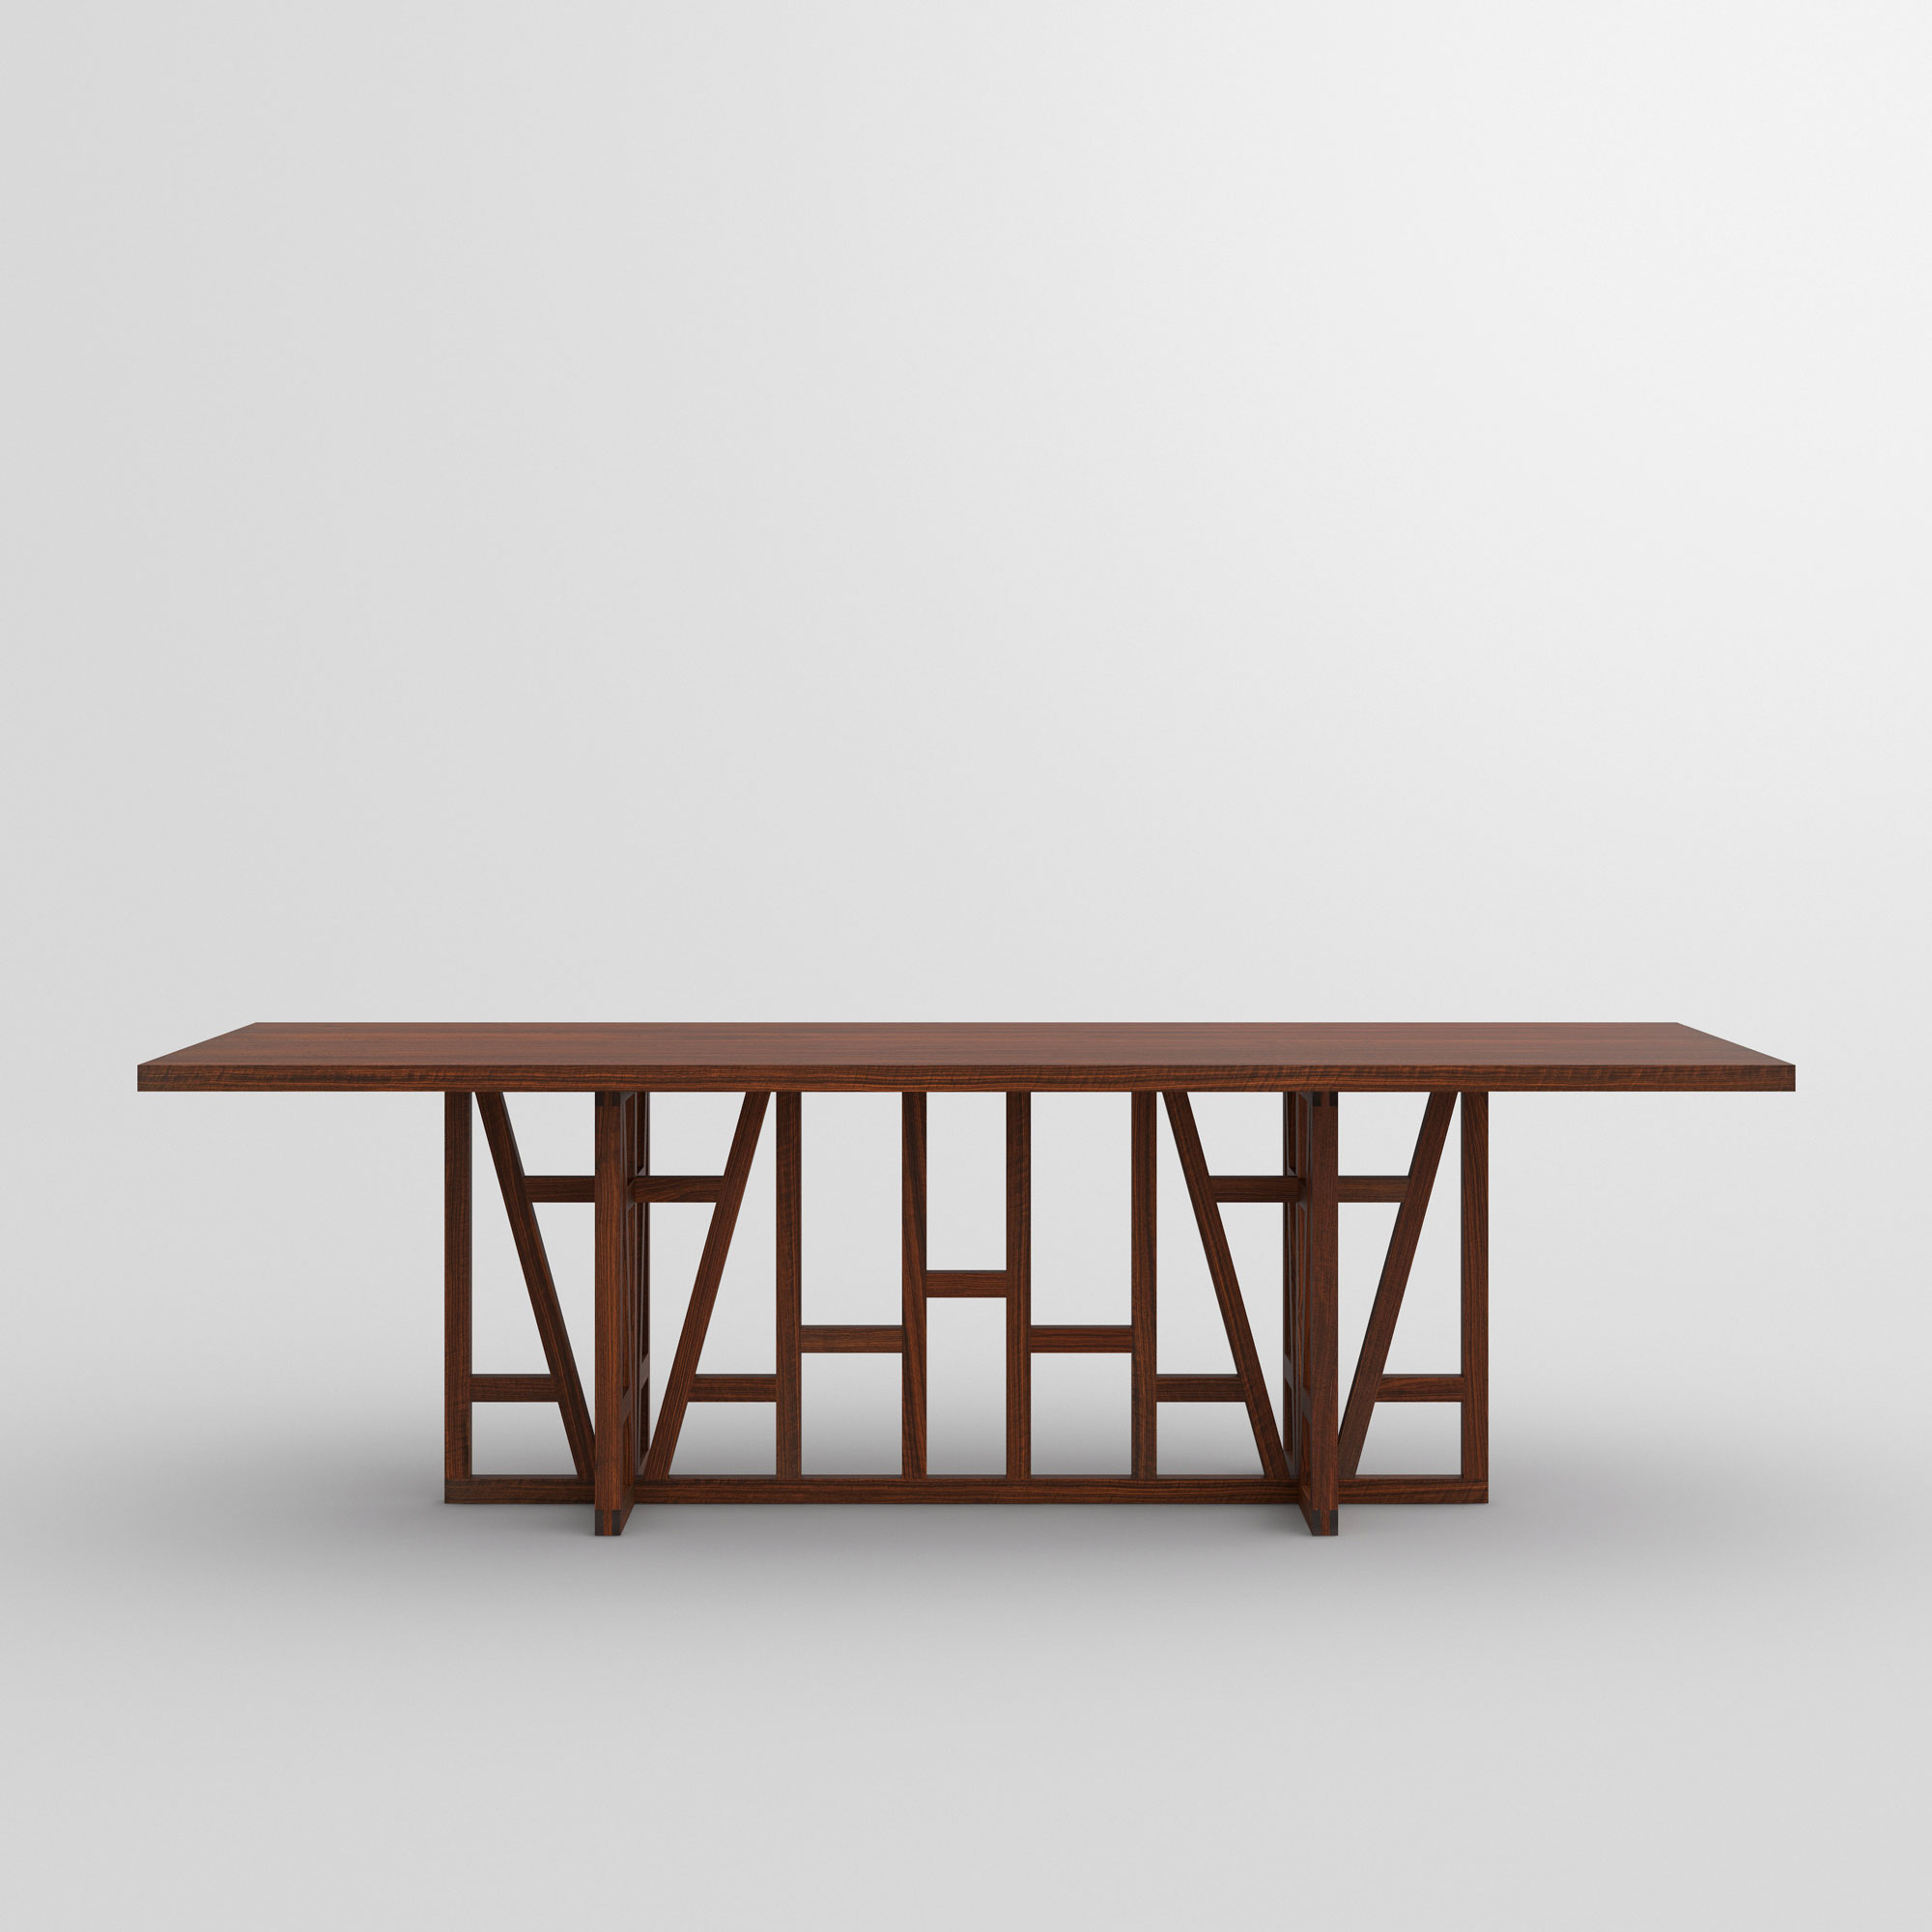 Designer Solid Wood Table FACHWERK cam2 custom made in solid wood by vitamin design